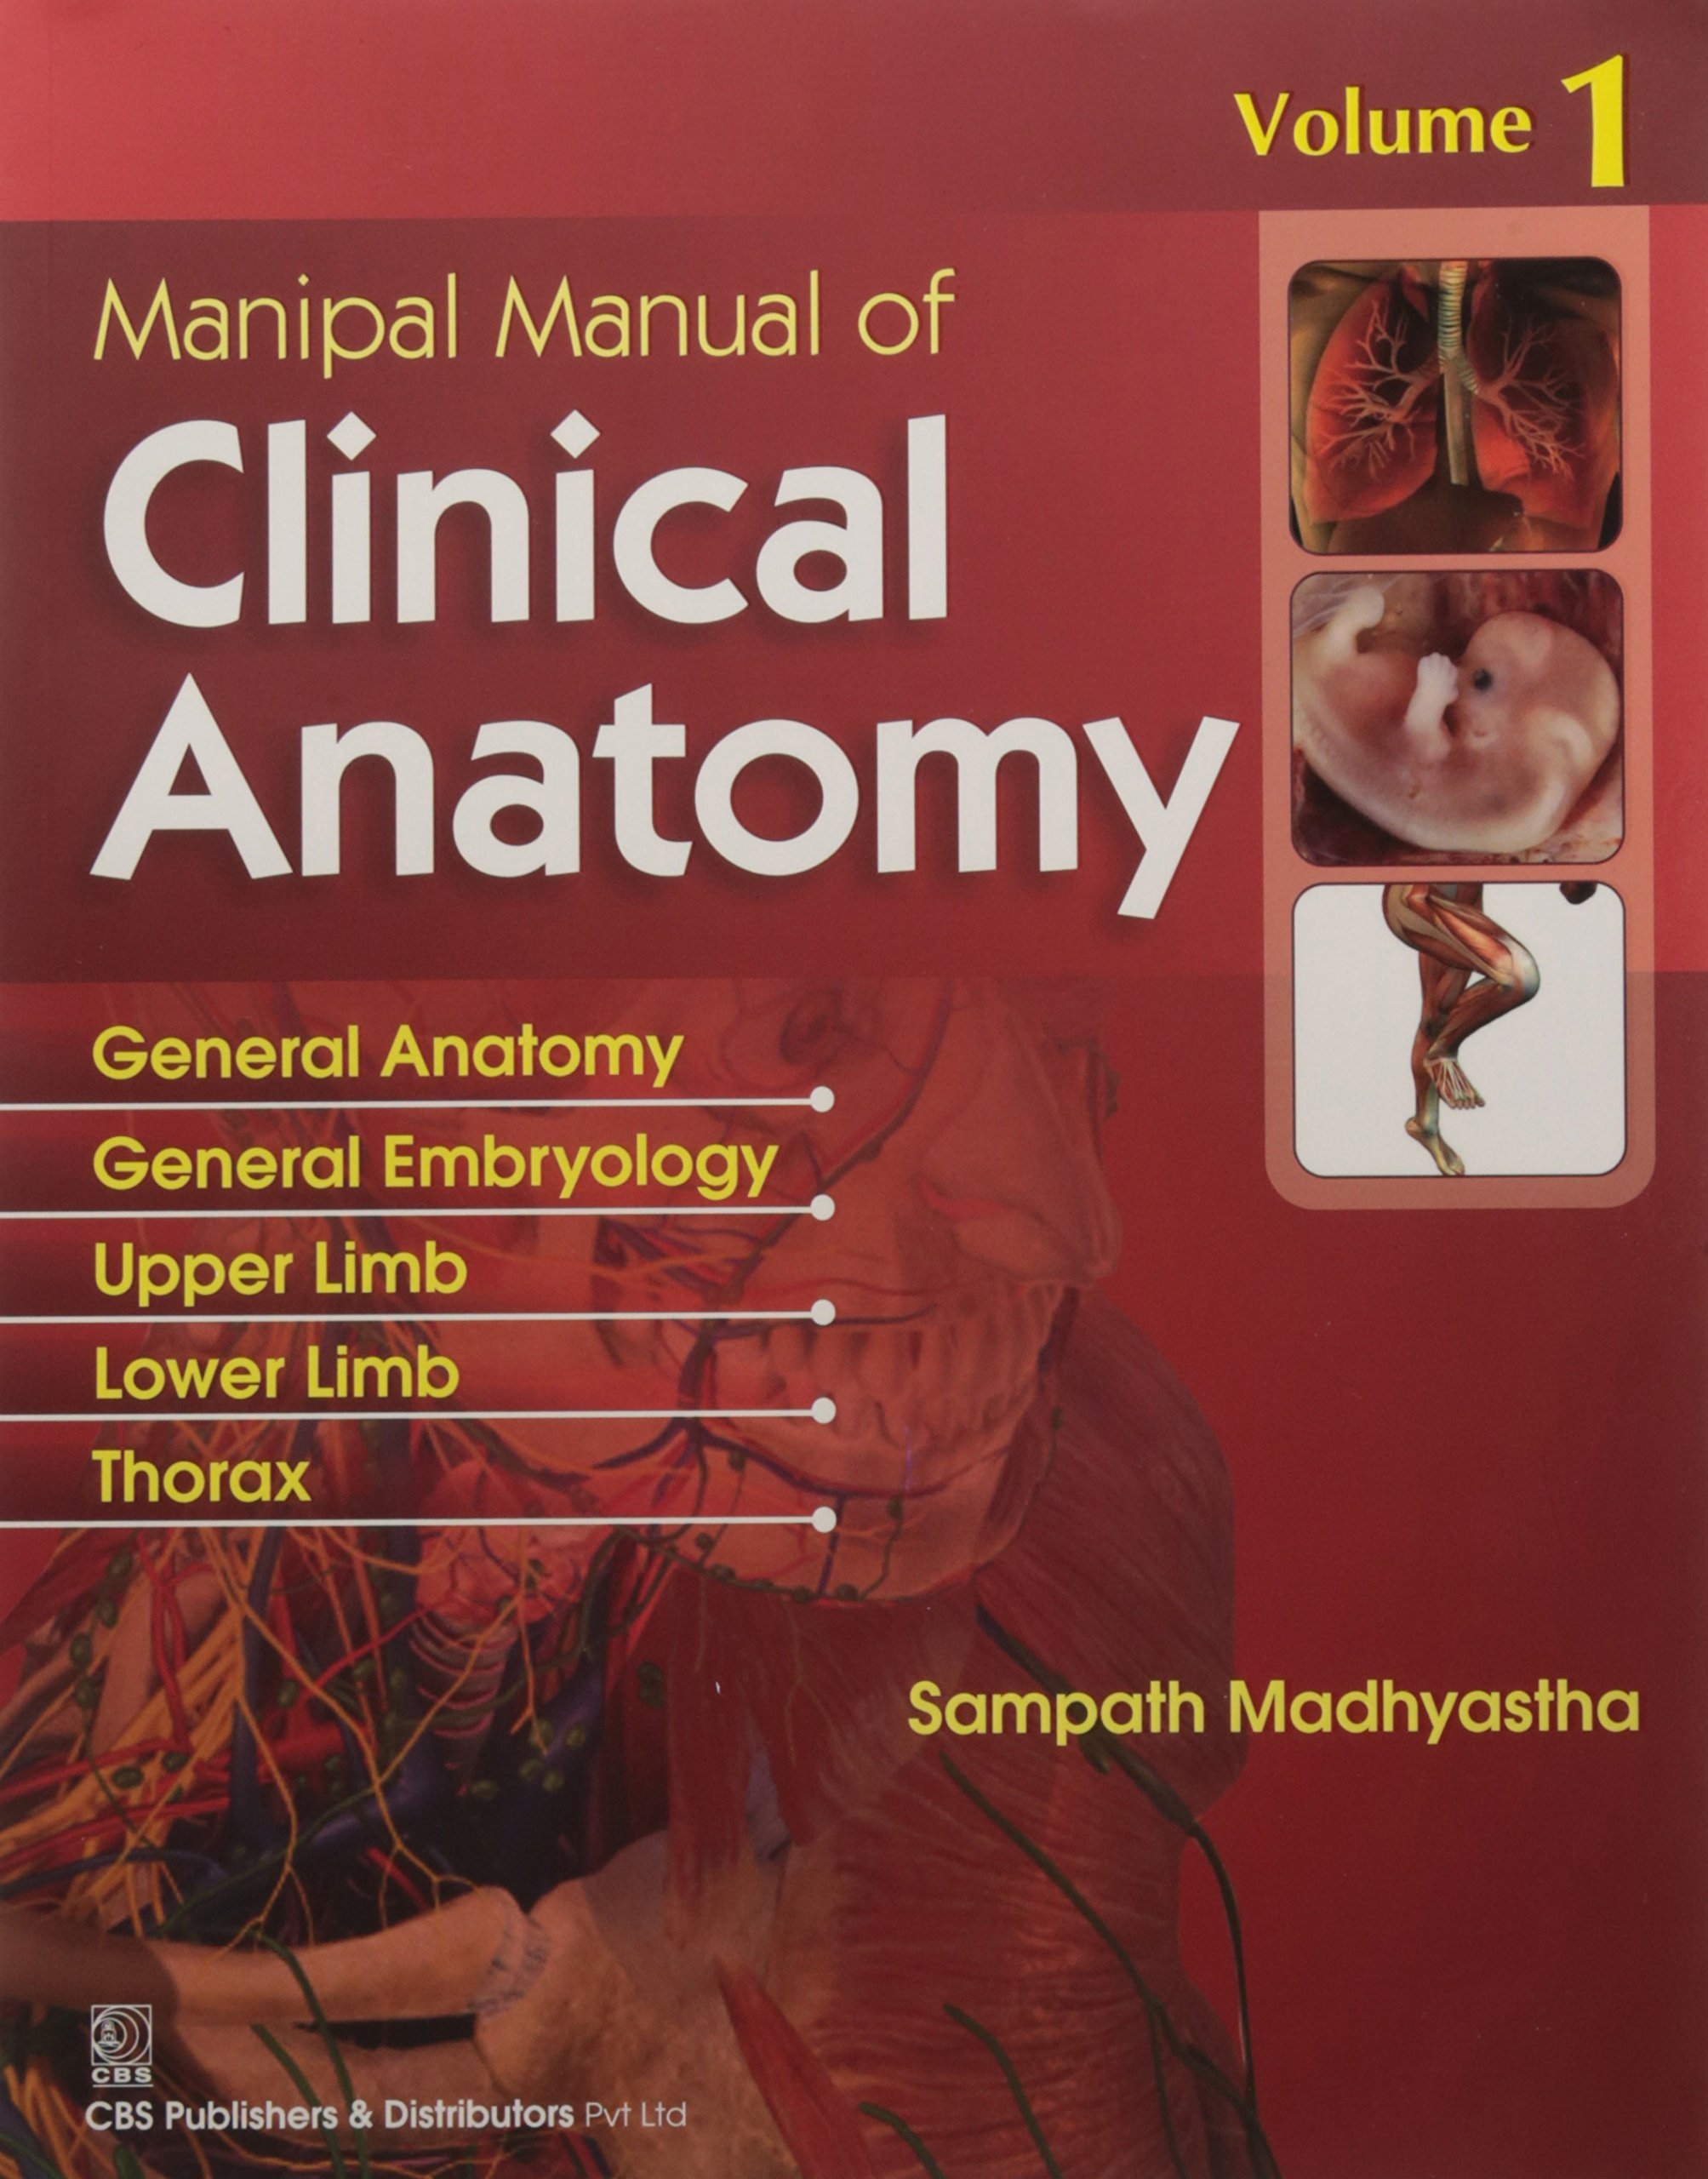 Amazon.in: Buy Manipal Manual of Clinical Anatomy V1 Book Online at Low  Prices in India | Manipal Manual of Clinical Anatomy V1 Reviews & Ratings